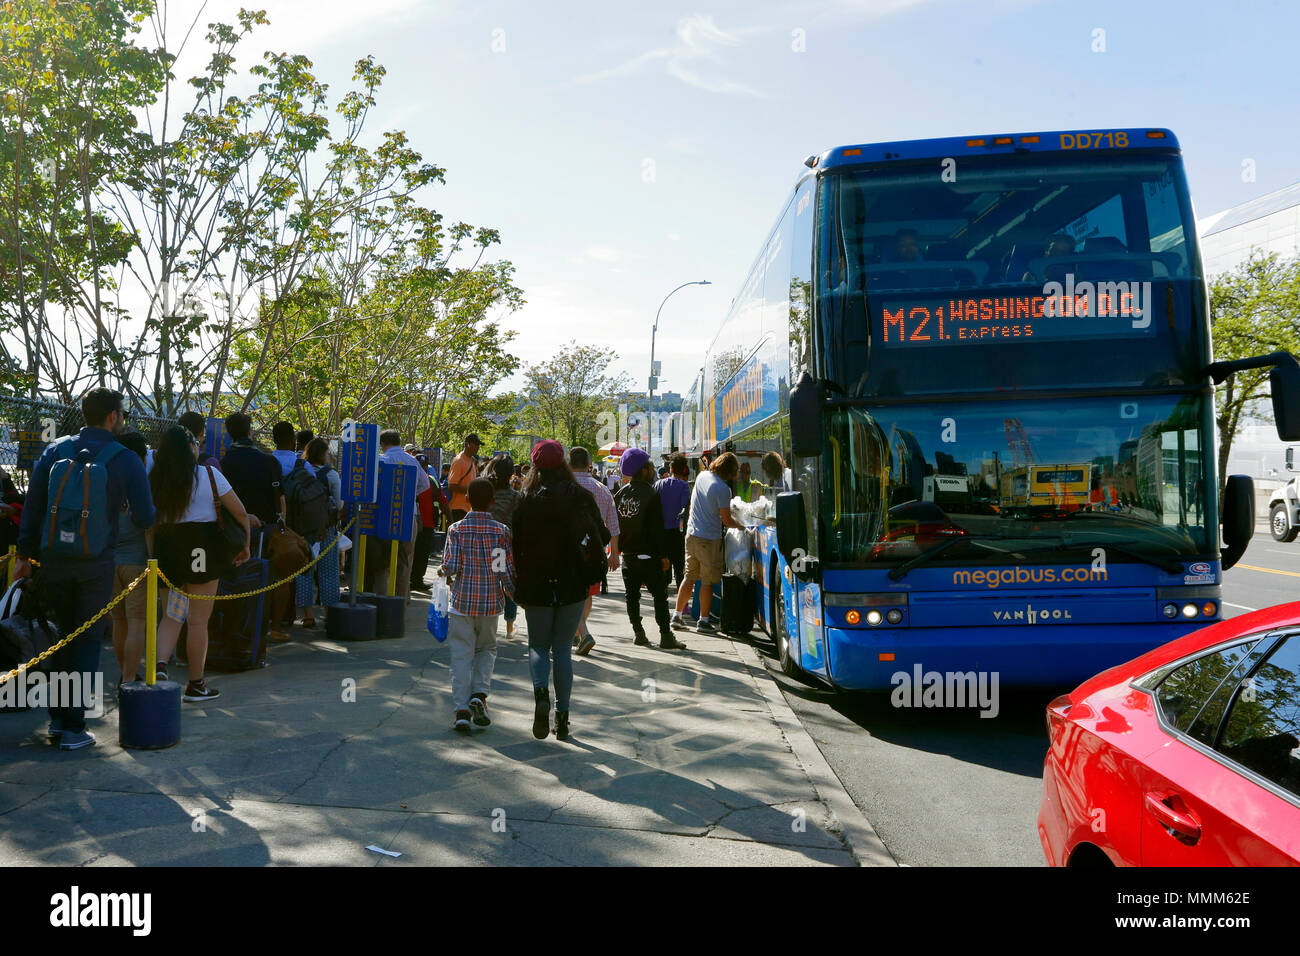 People queuing for buses for travel to other cities - Stock Image